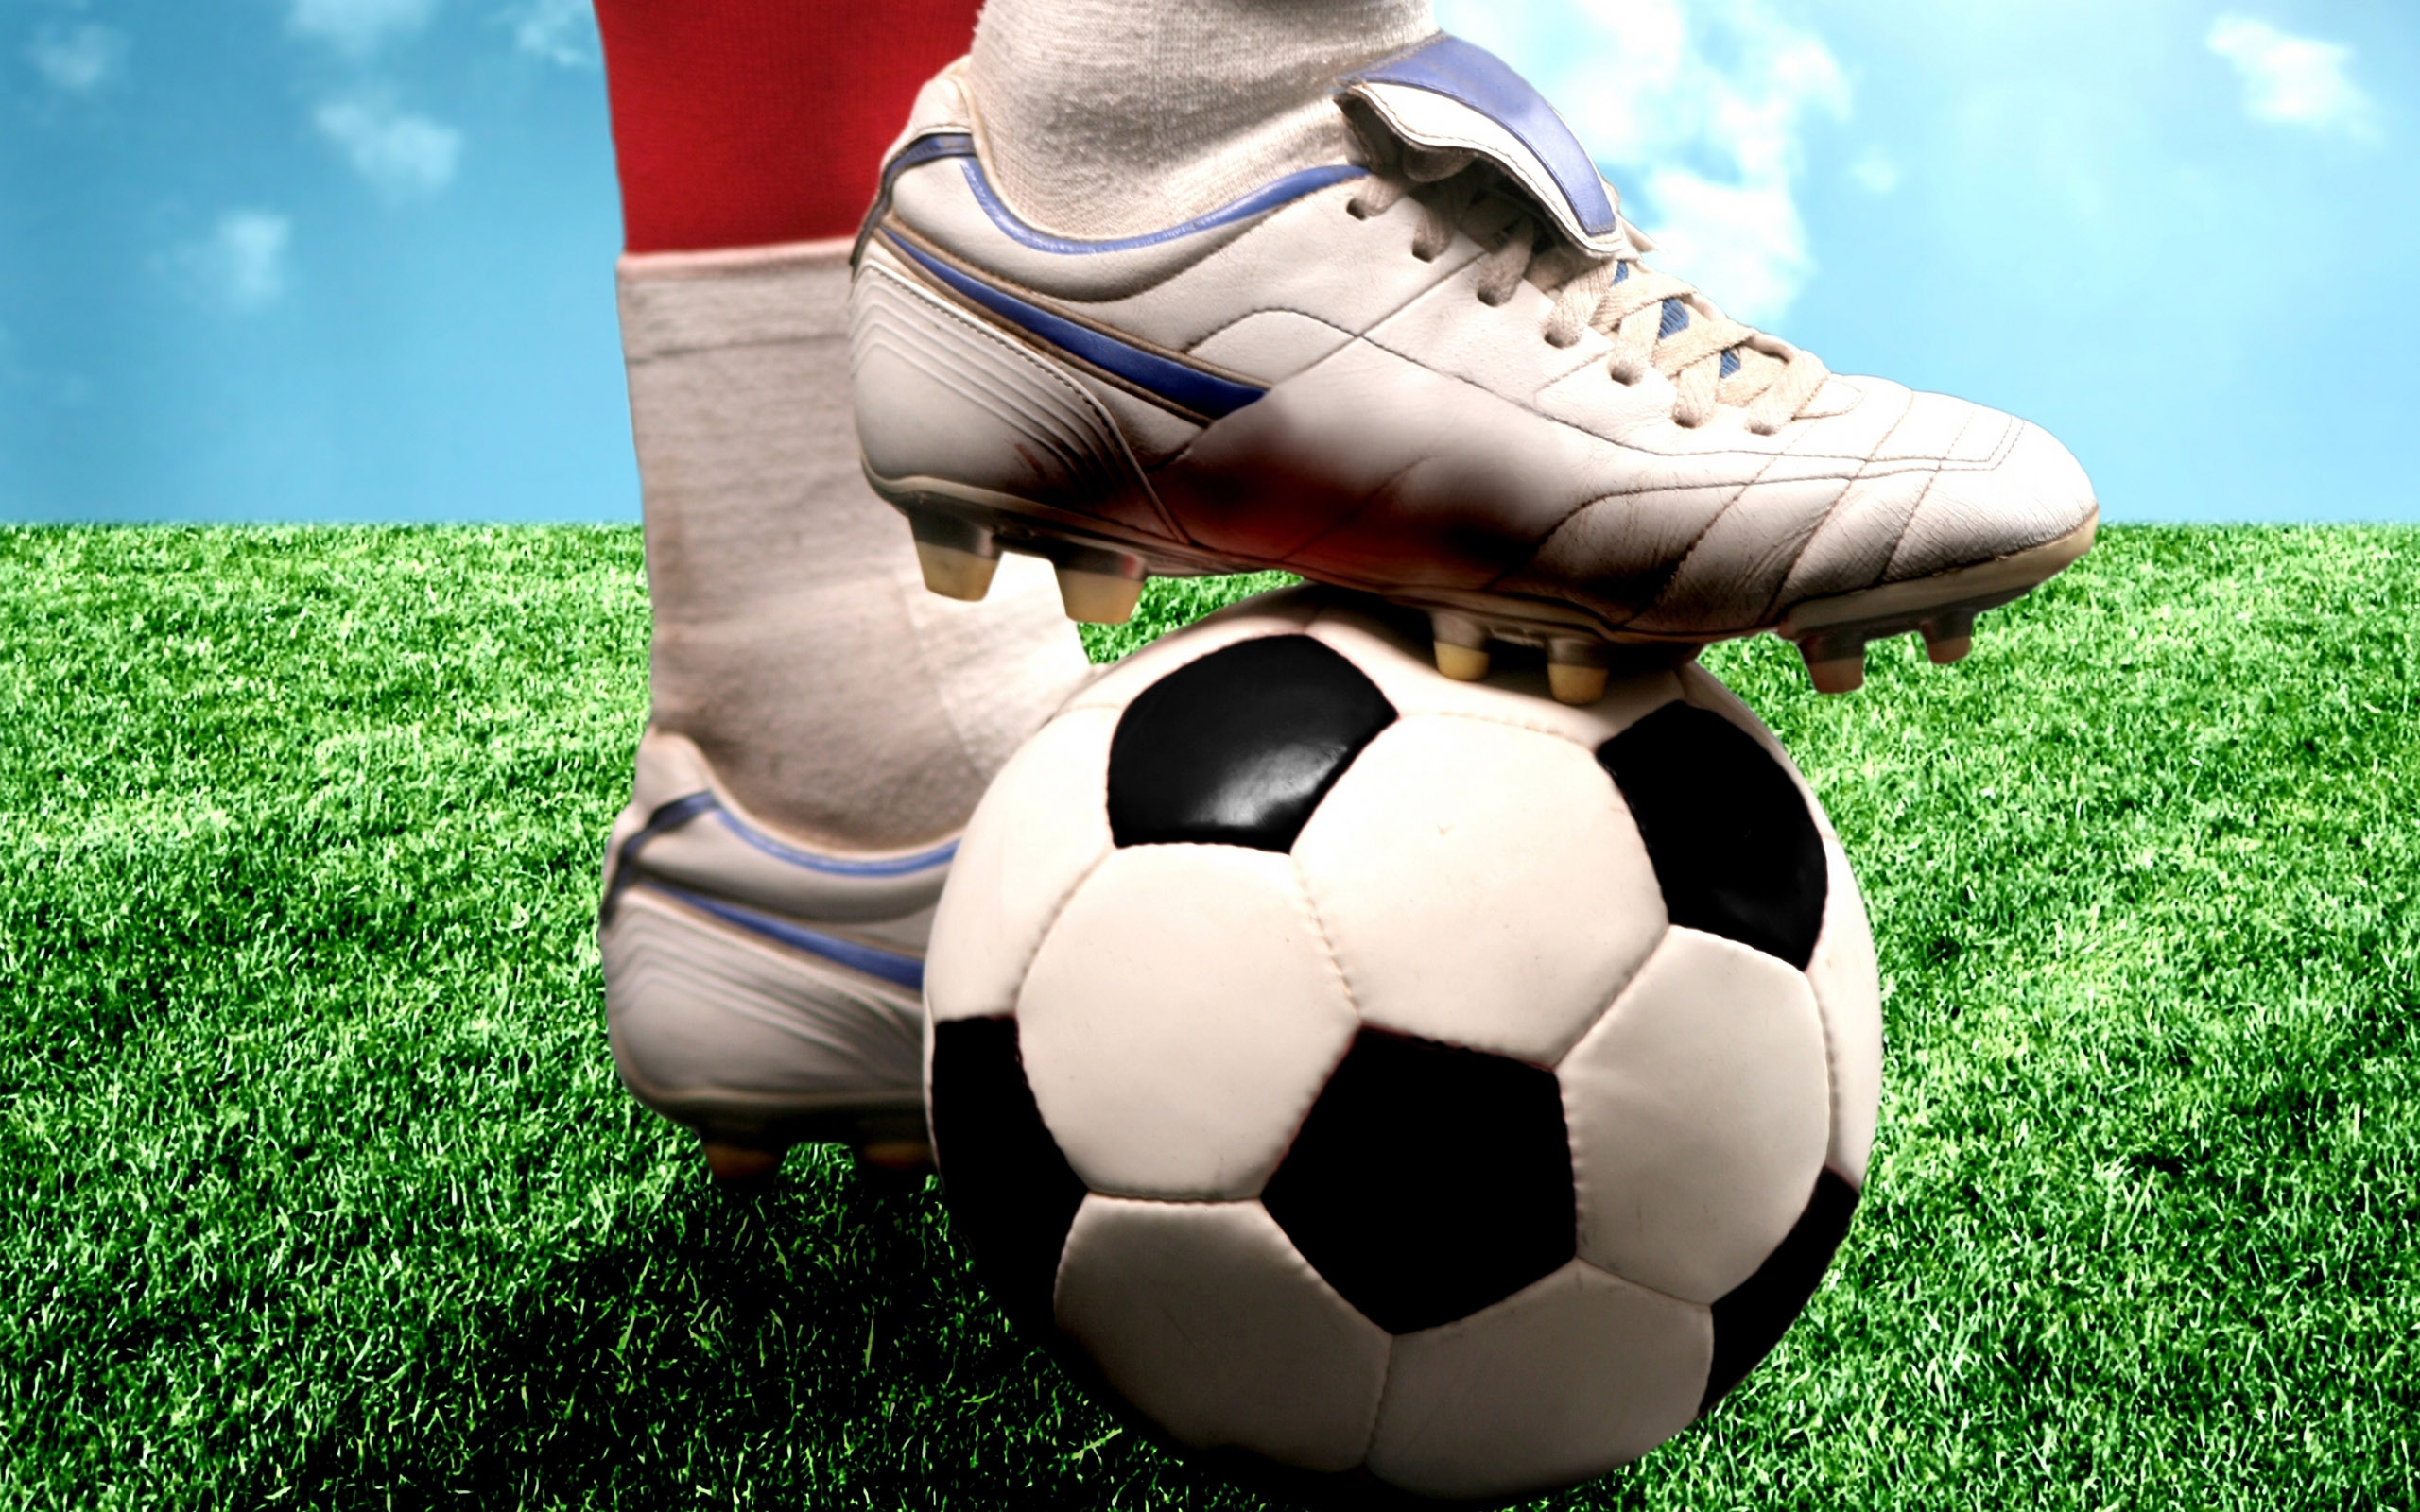 Wallpaper cool soccer photo download free pic wpd009907 download voltagebd Choice Image